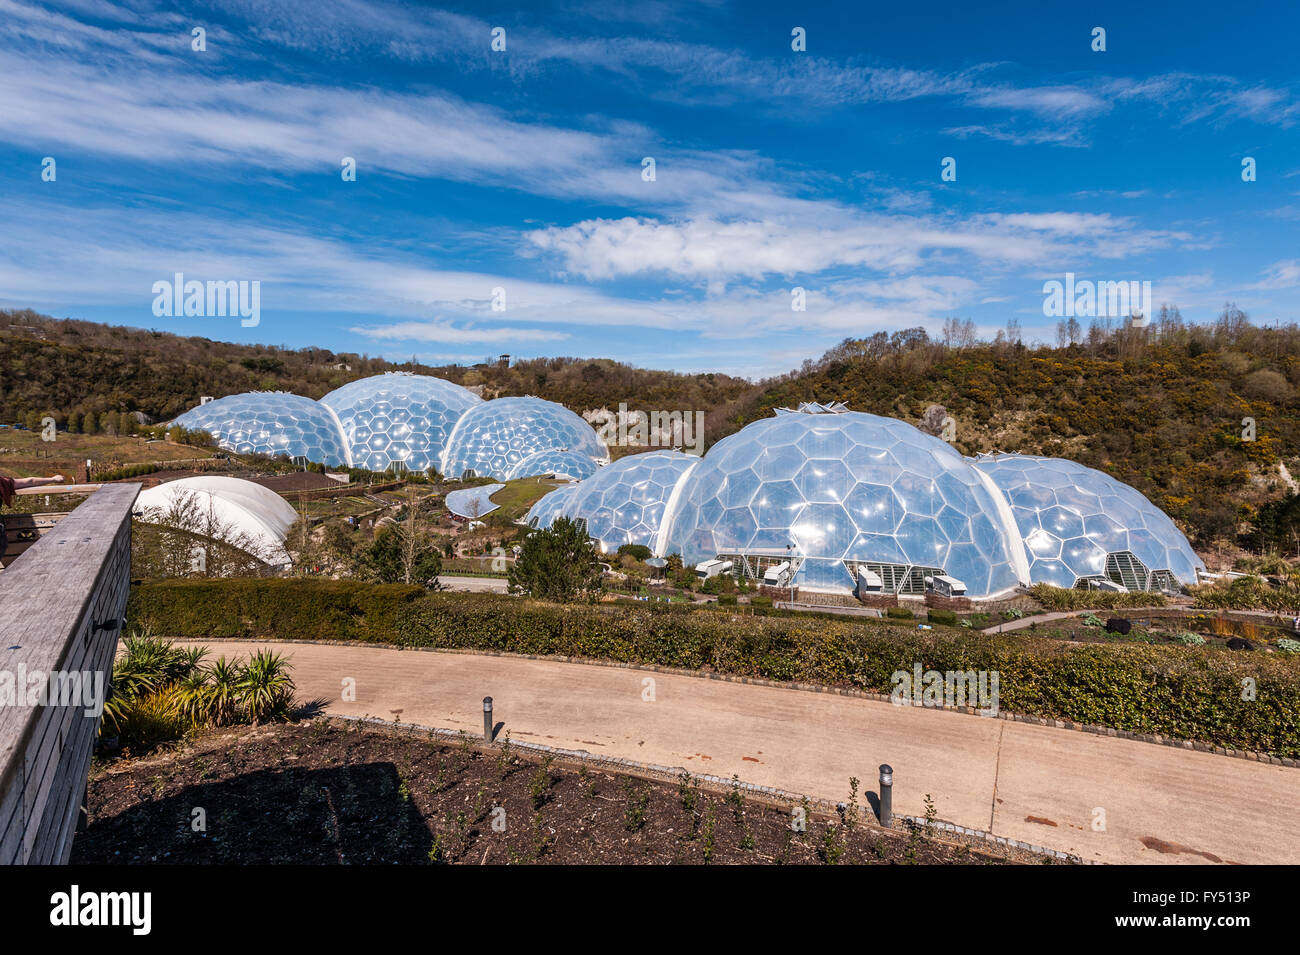 the eden project - Stock Image